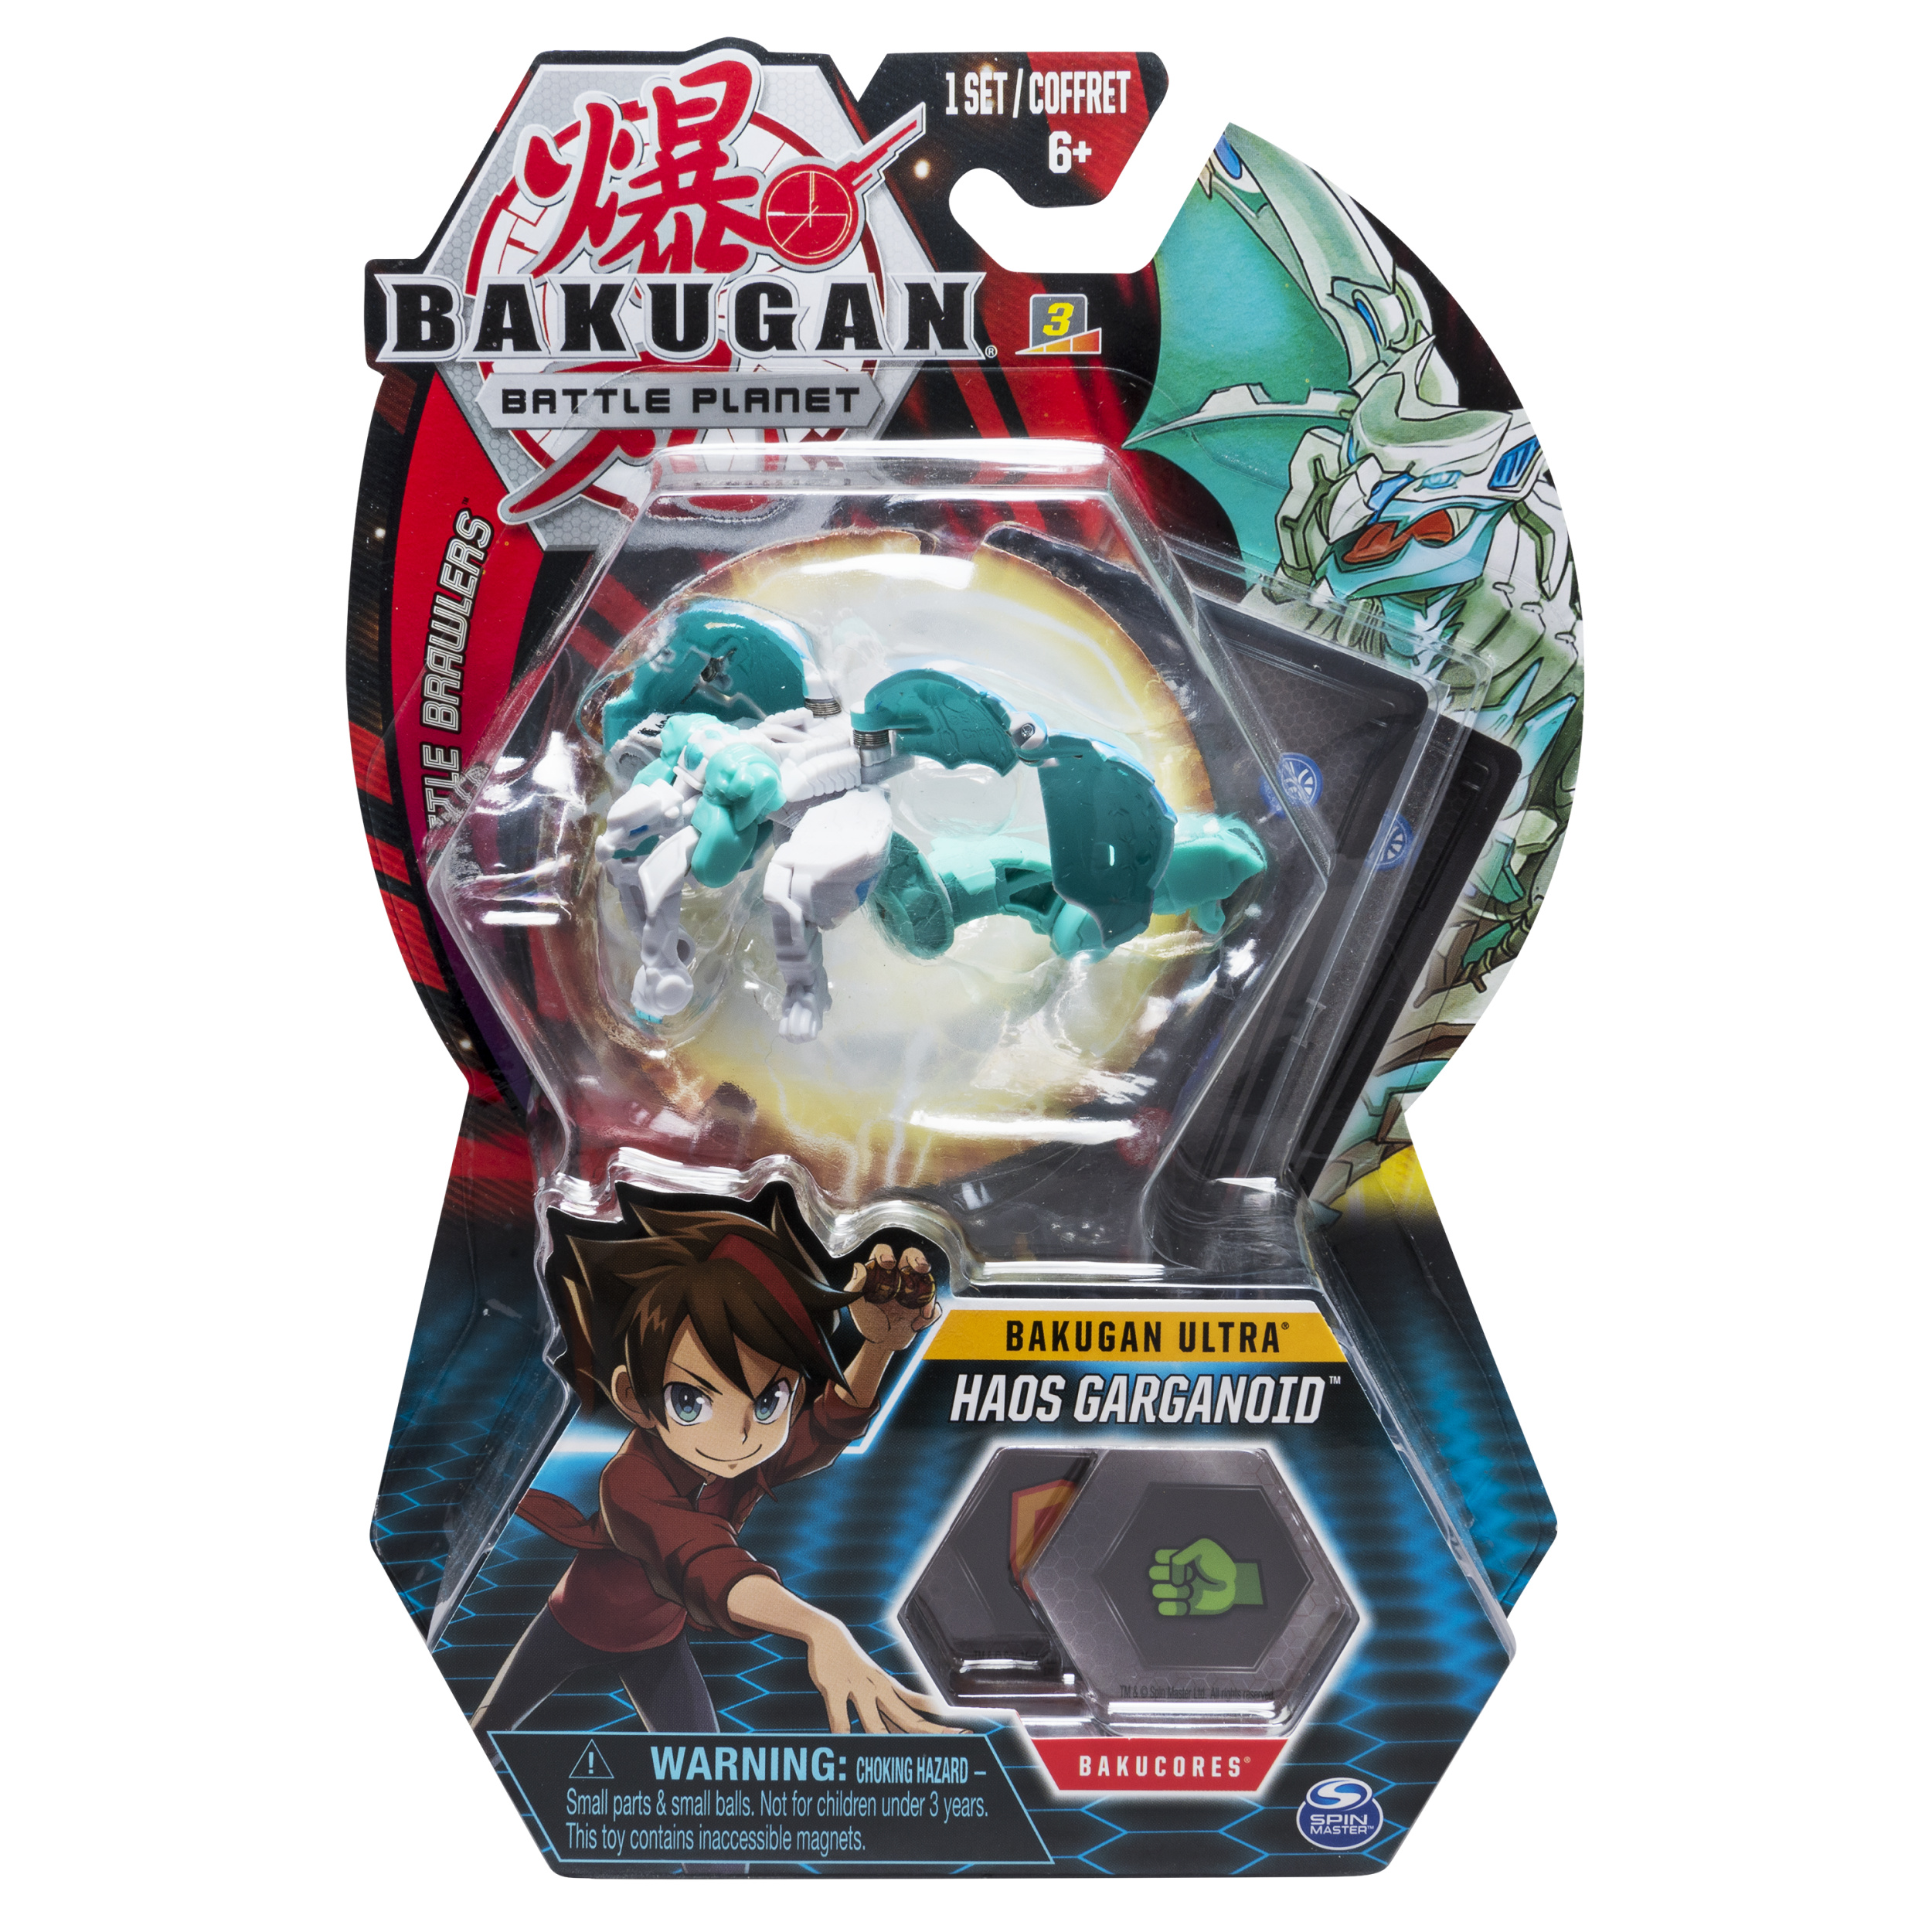 Bakugan Ultra, Haos Garganoid, 3-inch Tall Collectible Transforming Creature, for Ages 6 and Up